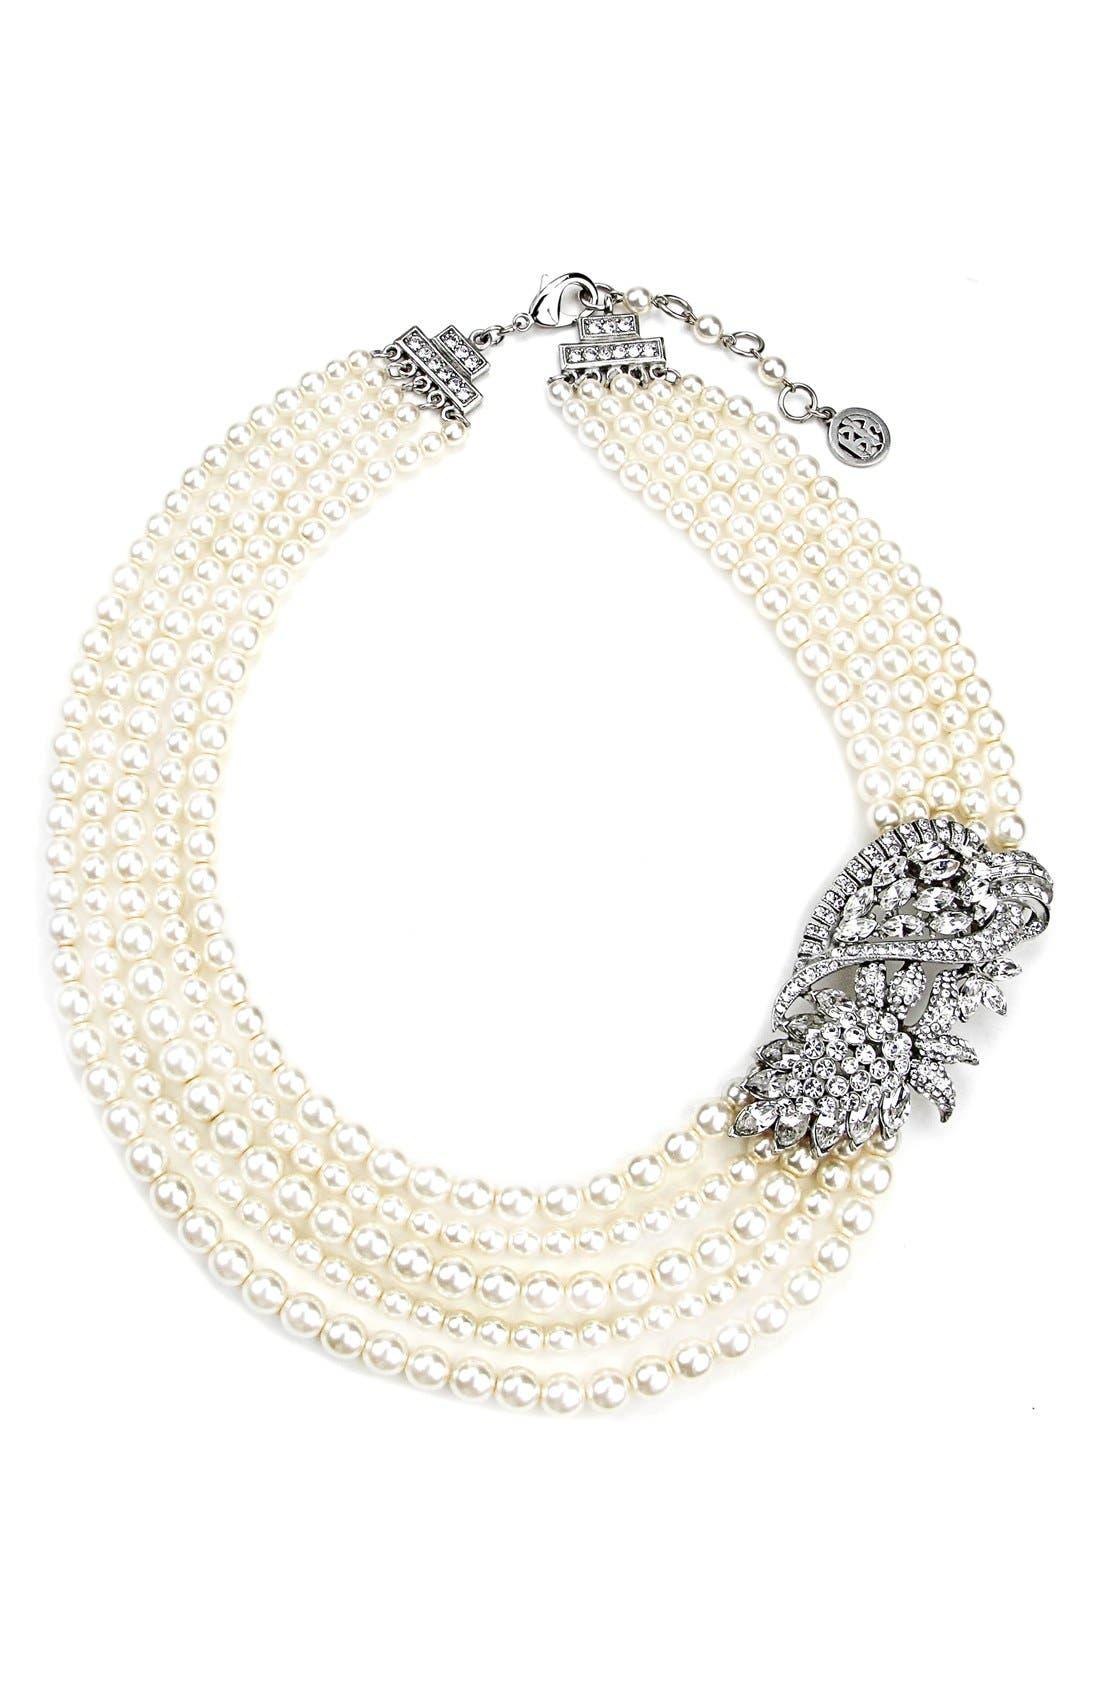 Main Image - Ben-Amun Faux Pearl Statement Necklace